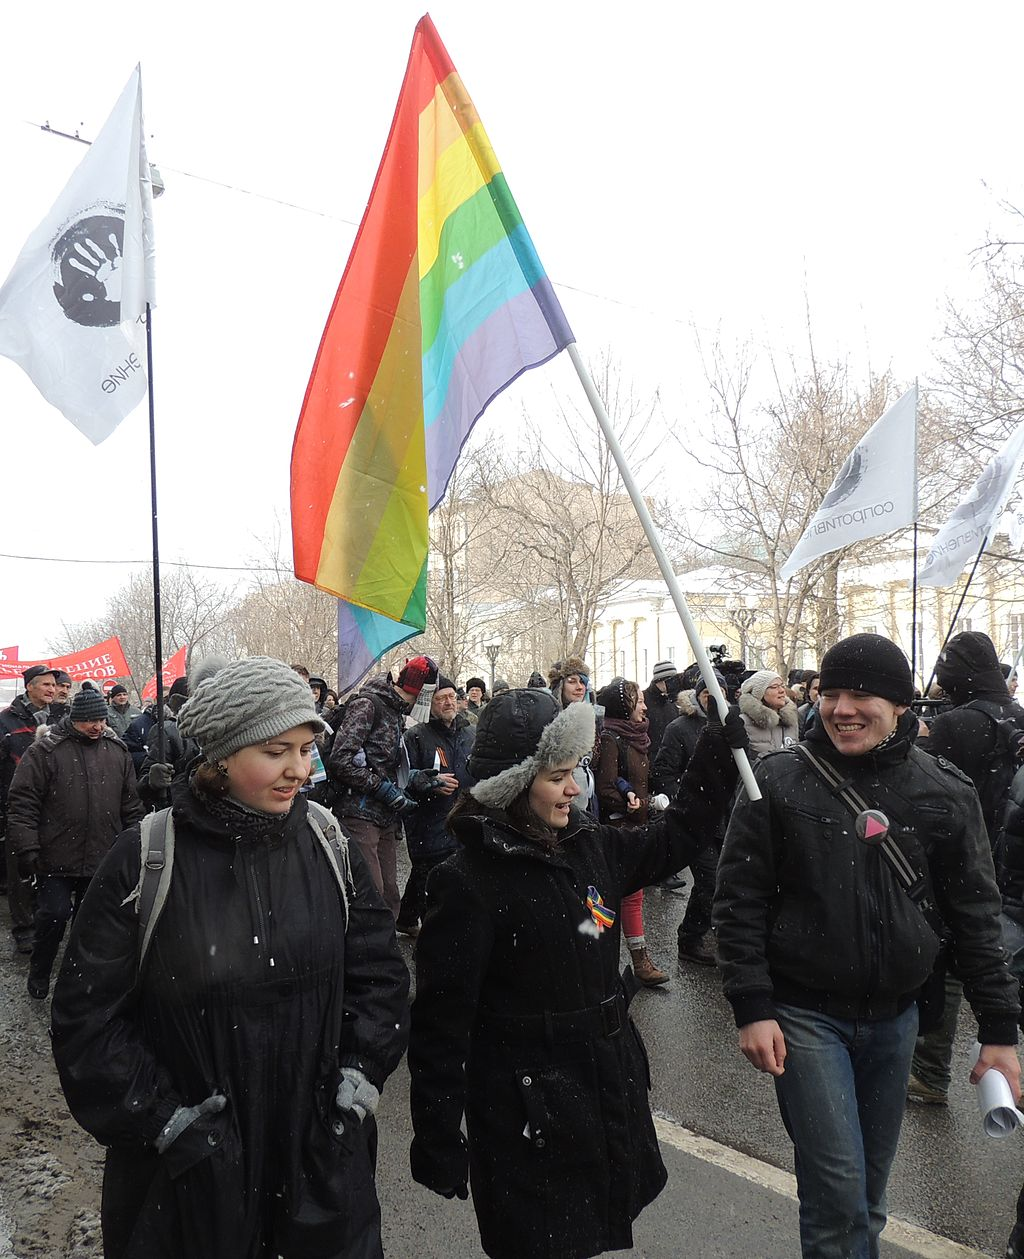 """<div class=""""at-above-post-arch-page addthis_tool"""" data-url=""""https://blogs.brandeis.edu/thegenesistimes/2013/07/28/siberian-rainbow-by-yurii-plotkin/""""></div>An interview on gay rights from the other side of the information wall<!-- AddThis Advanced Settings above via filter on wp_trim_excerpt --><!-- AddThis Advanced Settings below via filter on wp_trim_excerpt --><!-- AddThis Advanced Settings generic via filter on wp_trim_excerpt --><!-- AddThis Share Buttons above via filter on wp_trim_excerpt --><!-- AddThis Share Buttons below via filter on wp_trim_excerpt --><div class=""""at-below-post-arch-page addthis_tool"""" data-url=""""https://blogs.brandeis.edu/thegenesistimes/2013/07/28/siberian-rainbow-by-yurii-plotkin/""""></div><!-- AddThis Share Buttons generic via filter on wp_trim_excerpt -->"""